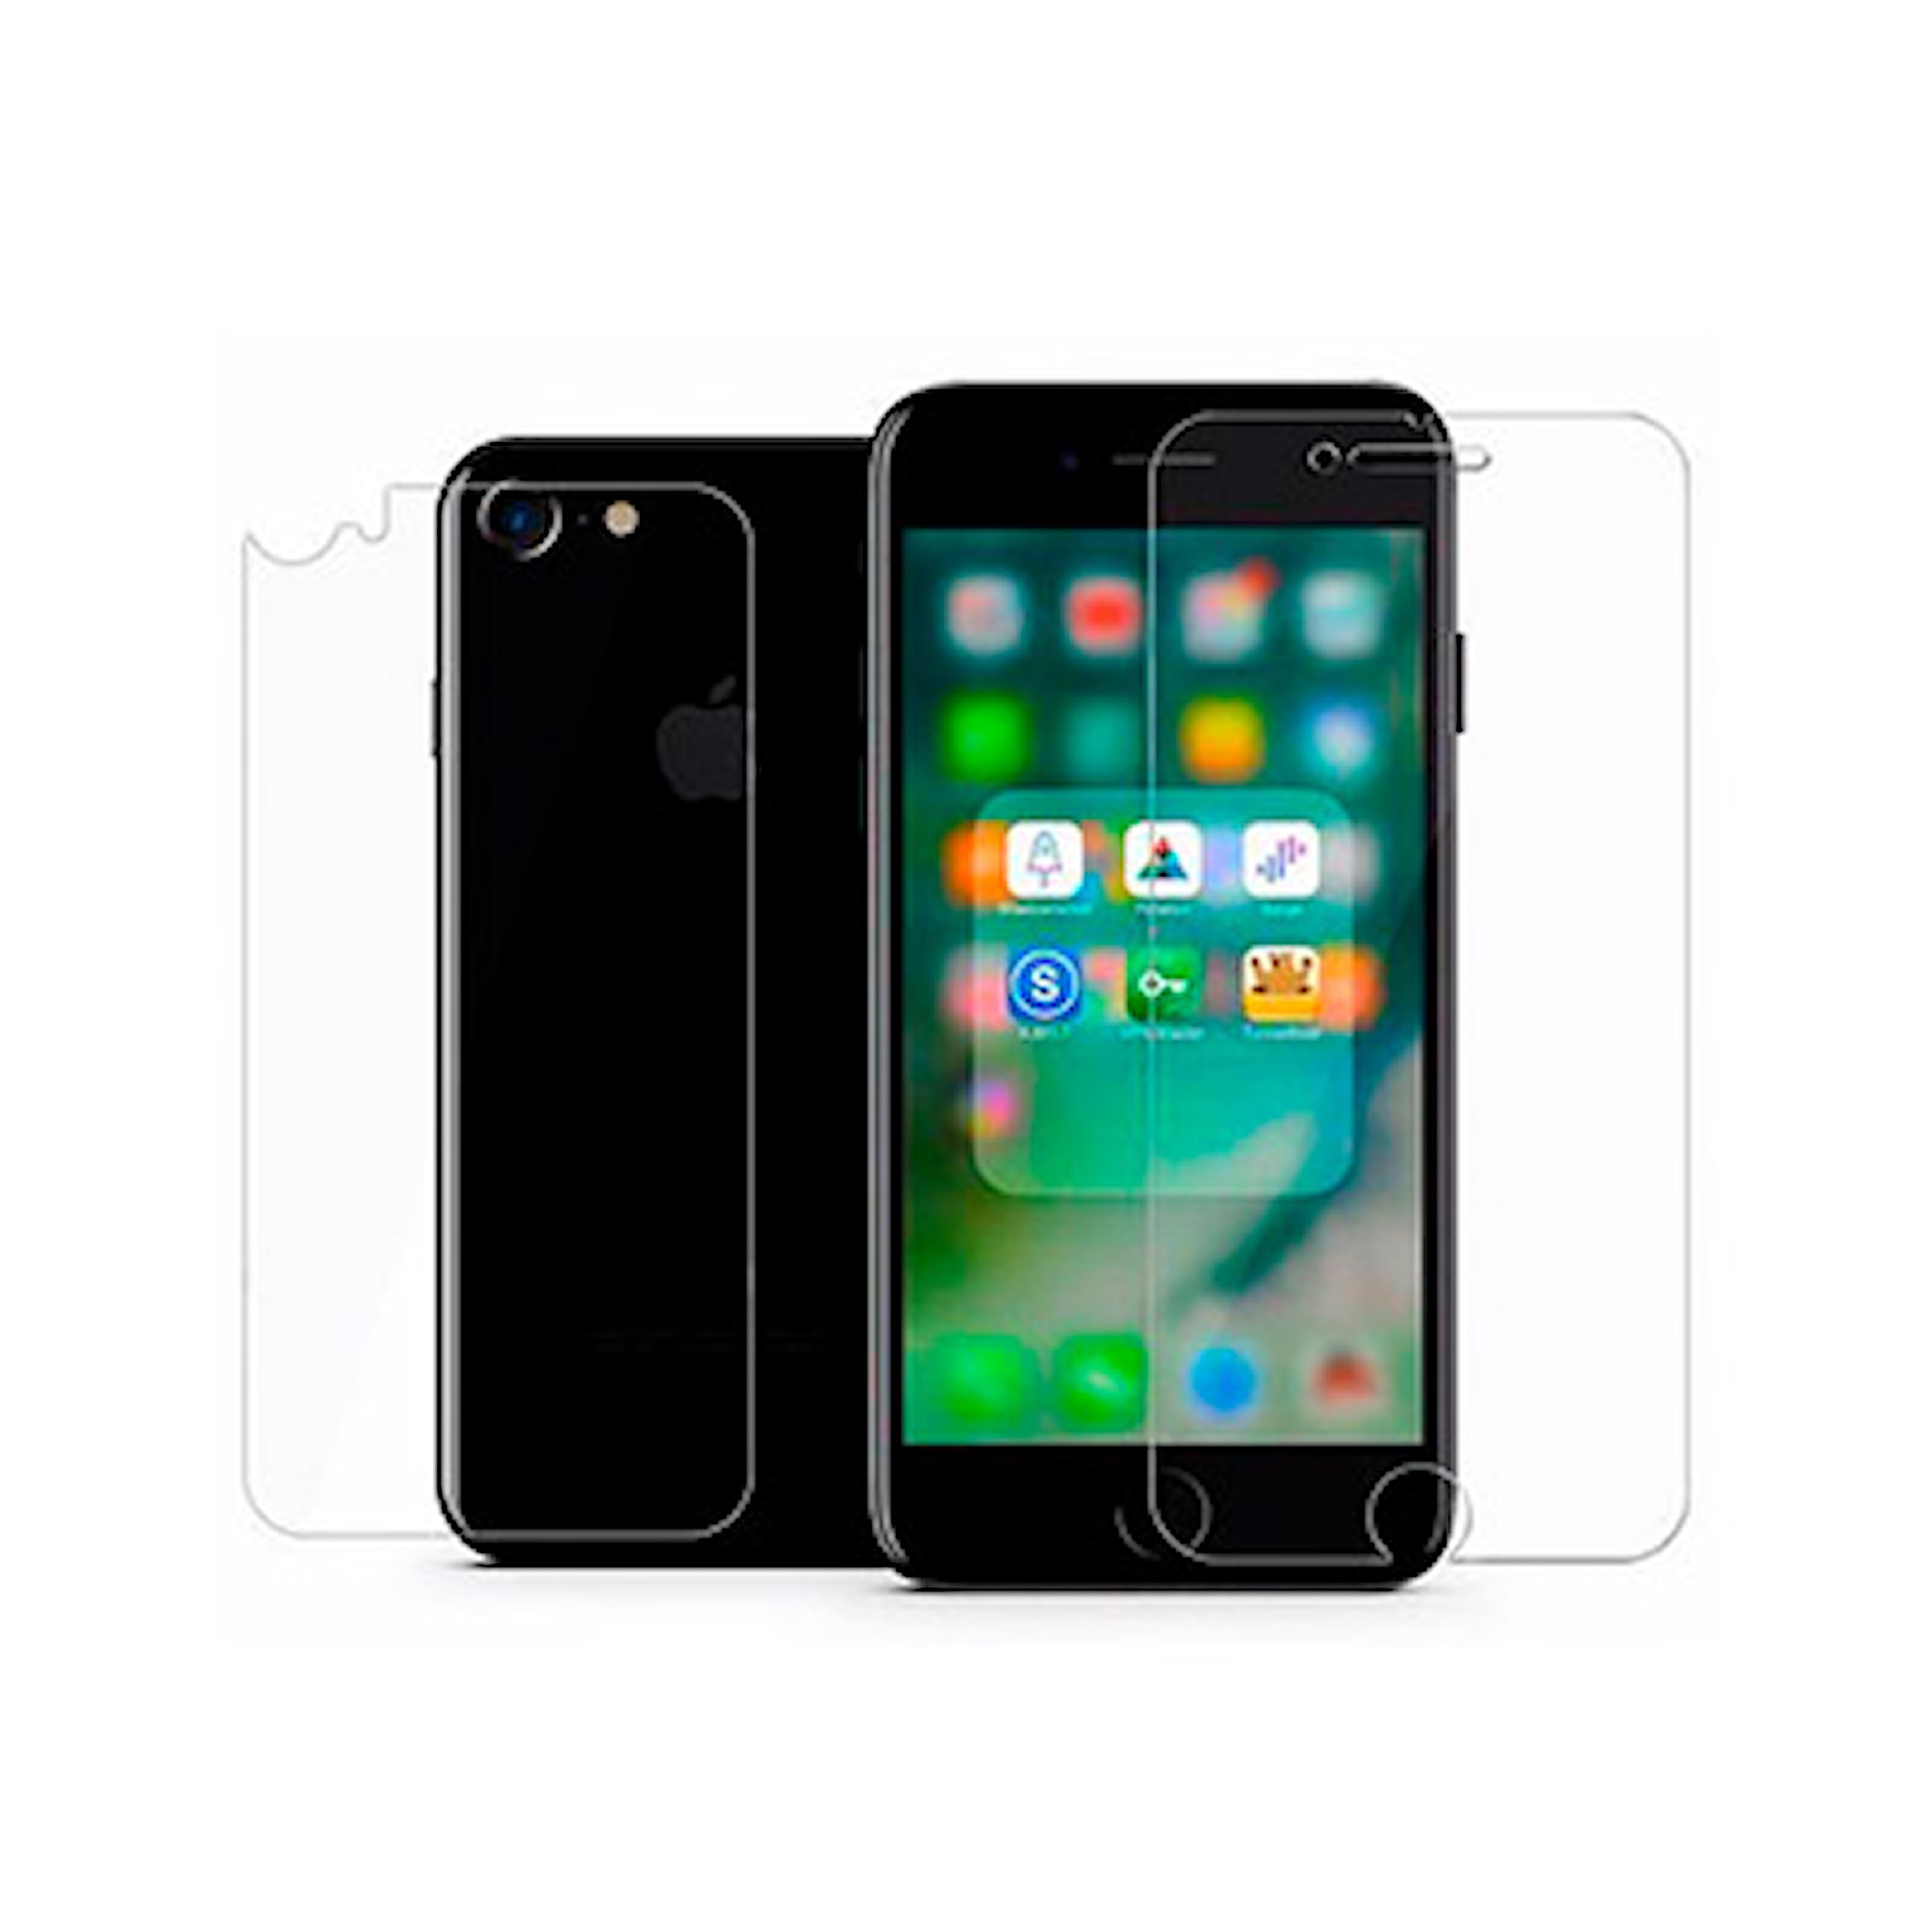 iPhone 6 Plus, Screen Protector Tempered Glass, For iPhone Models, Panserglass til iPhone, ,